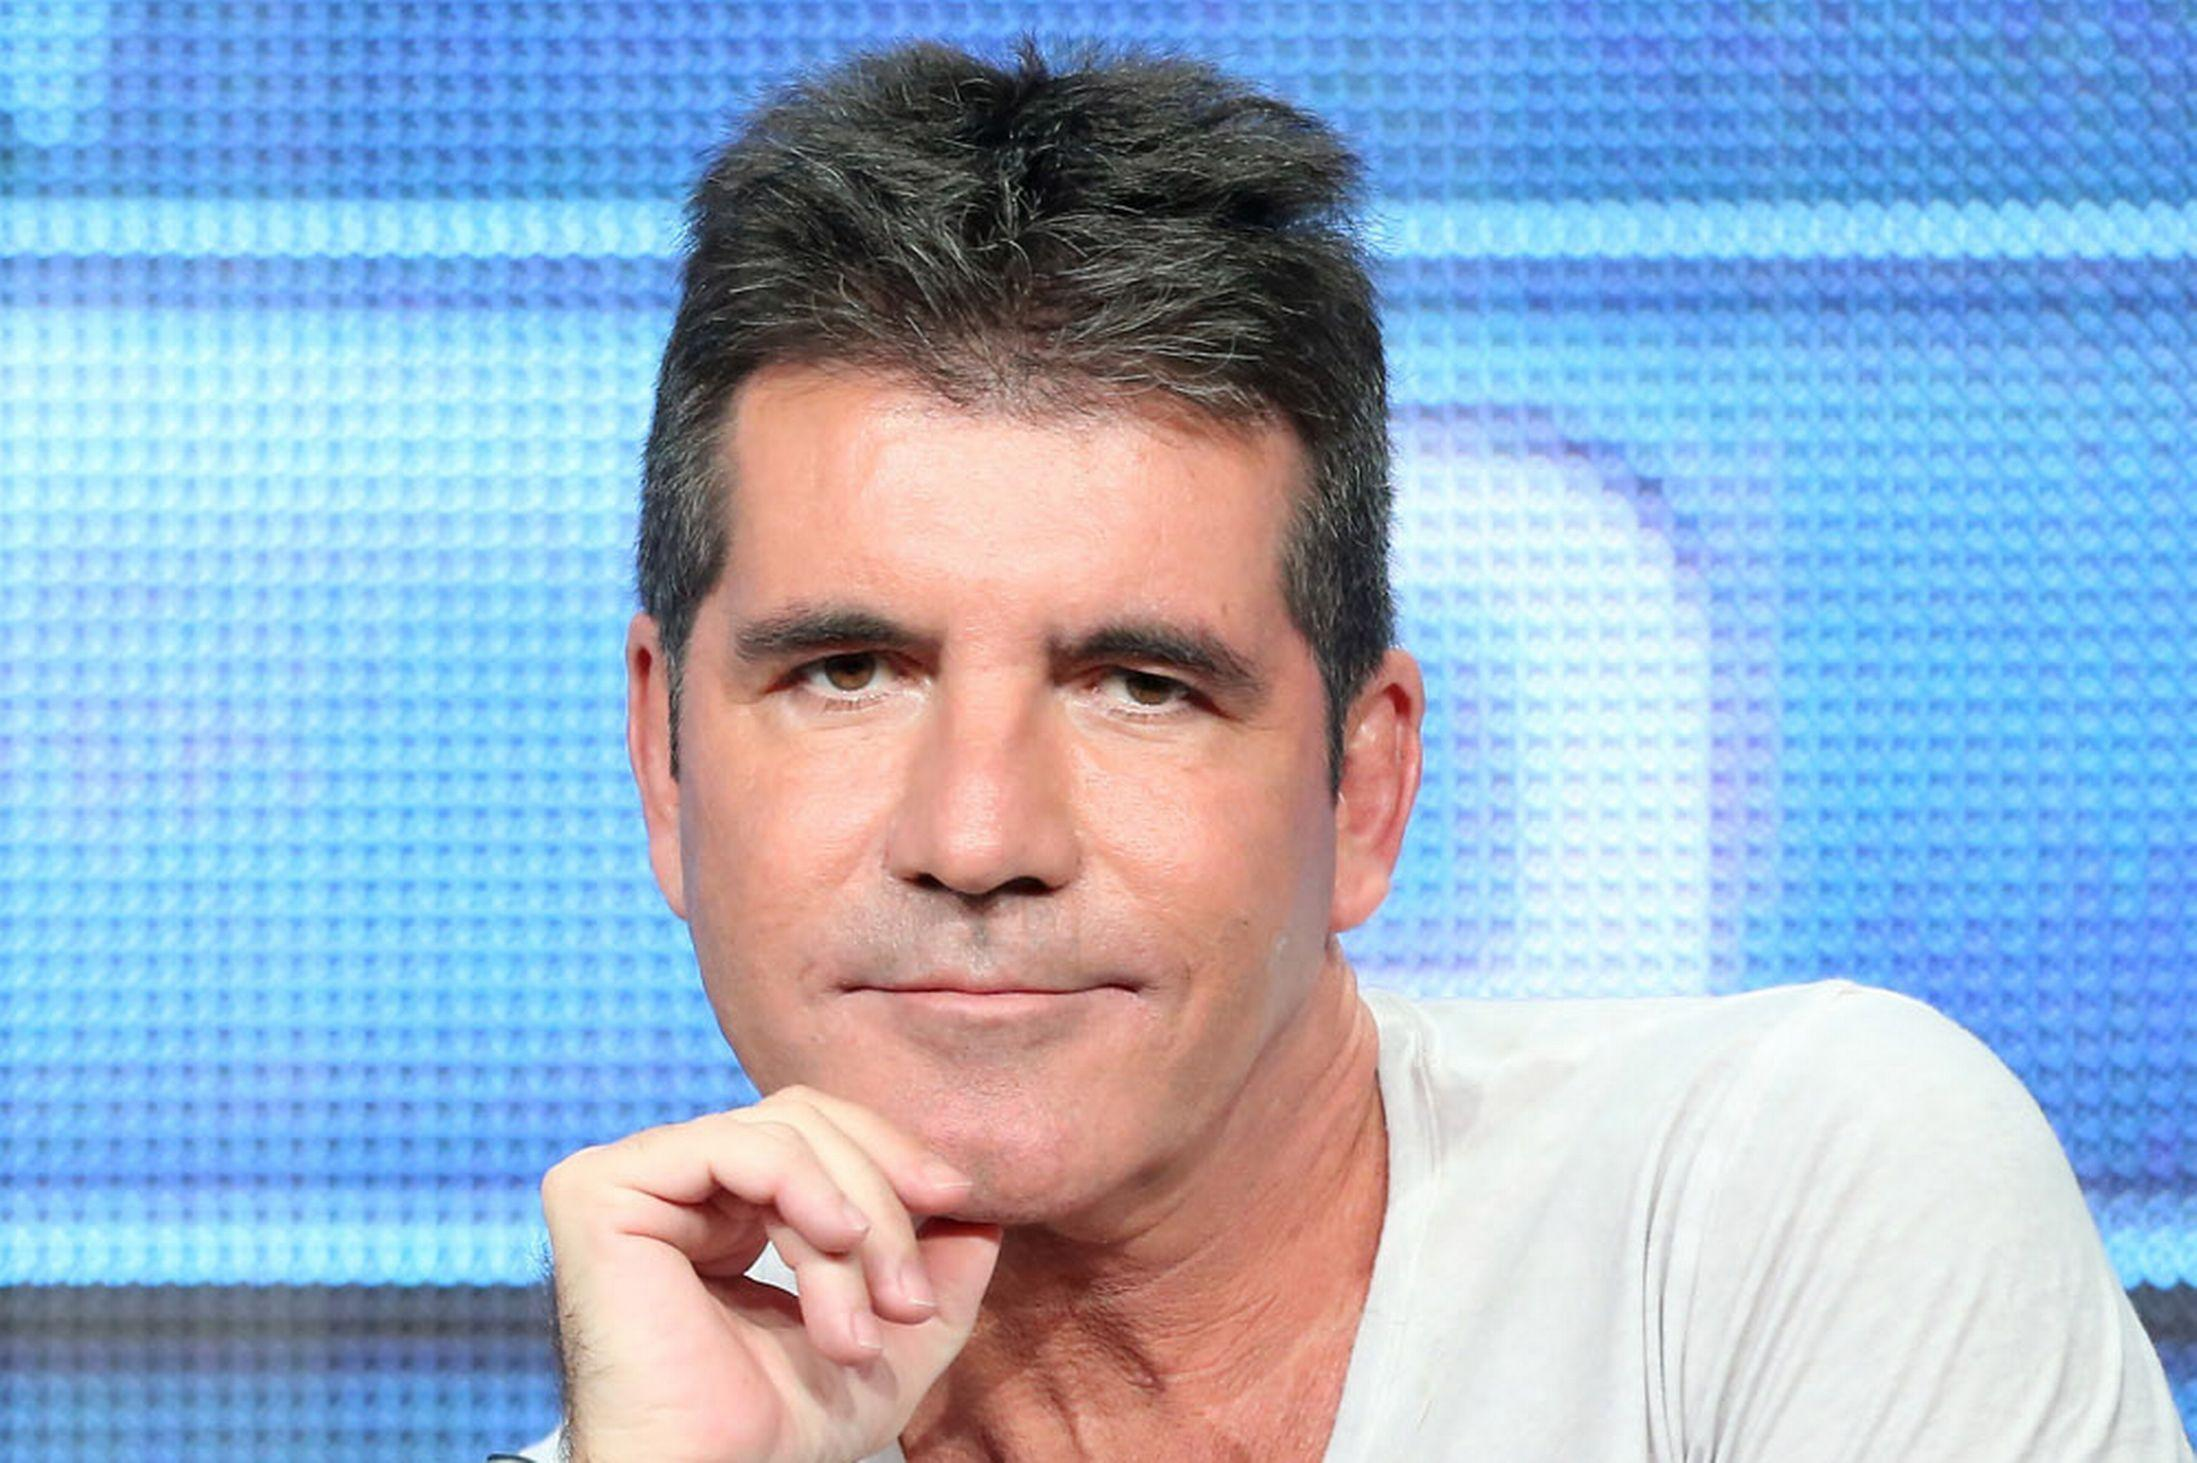 Simon Cowell Wallpapers 57131 2197x1463 px ~ HDWallSource